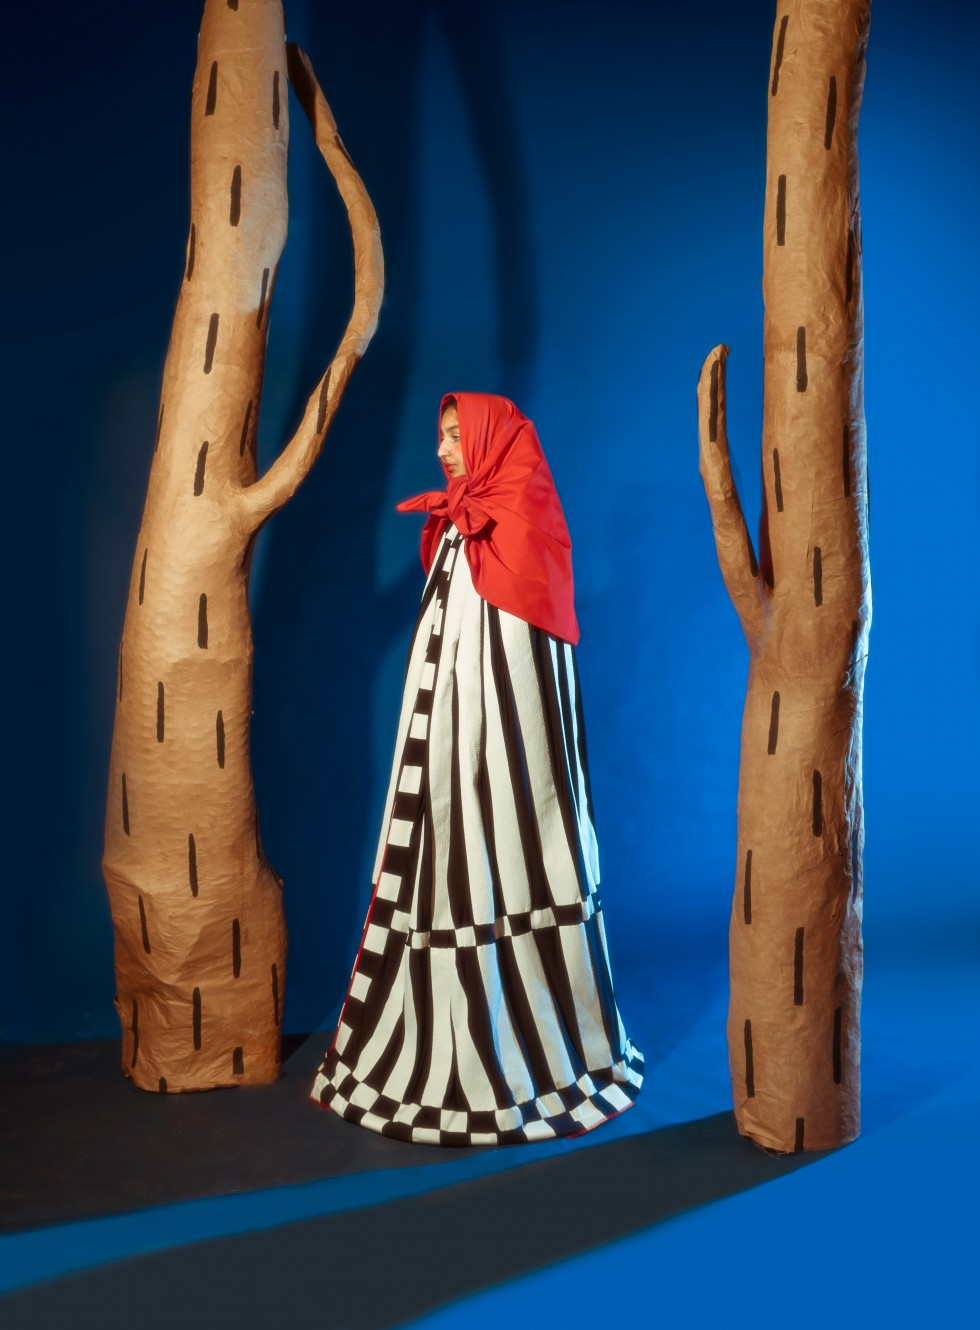 In the first image, the model stands between the two trees in profile facing left. The model wears a black and white piecework cape that is wider at the base, creating a very triangular shape. The model also wears a large red scarf tied around their head.